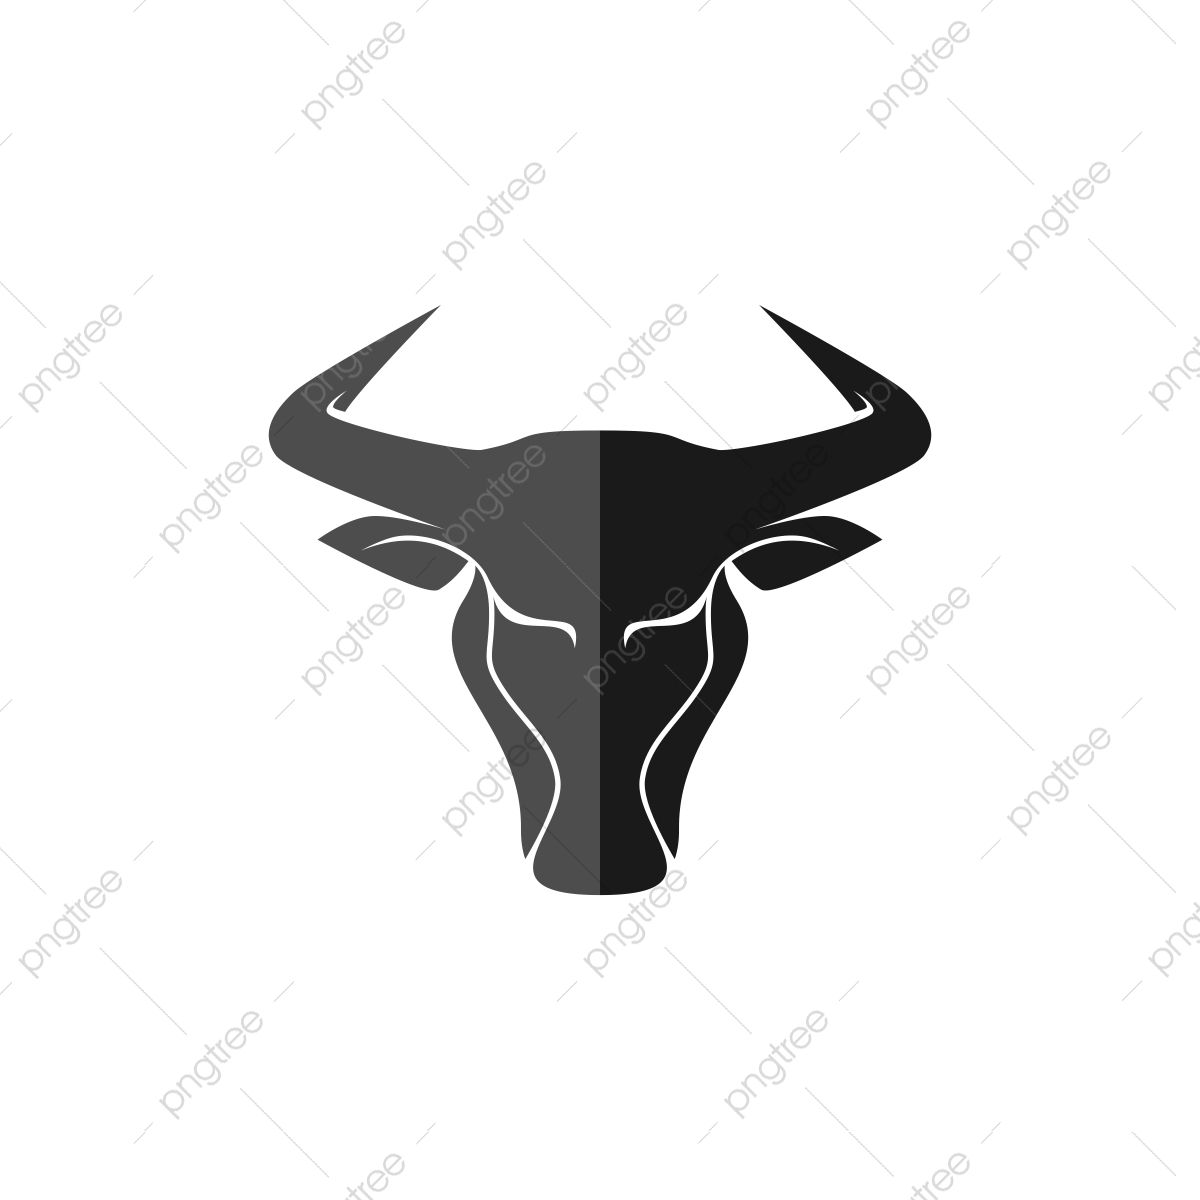 Cow Silhouette Vector Icon Black Angus Vector Illustration Cow Clipart Milk Farm Png And Vector With Transparent Background For Free Download Ilustrasi Vektor Ilustrasi Ilustrasi Ikon